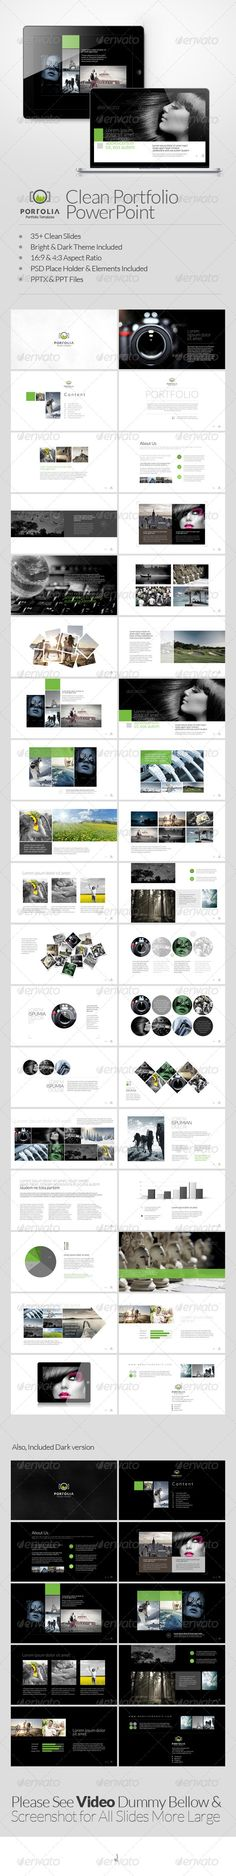 Portolia Multipurpose Clean Portfolio Powerpoint - Business Powerpoint Templates